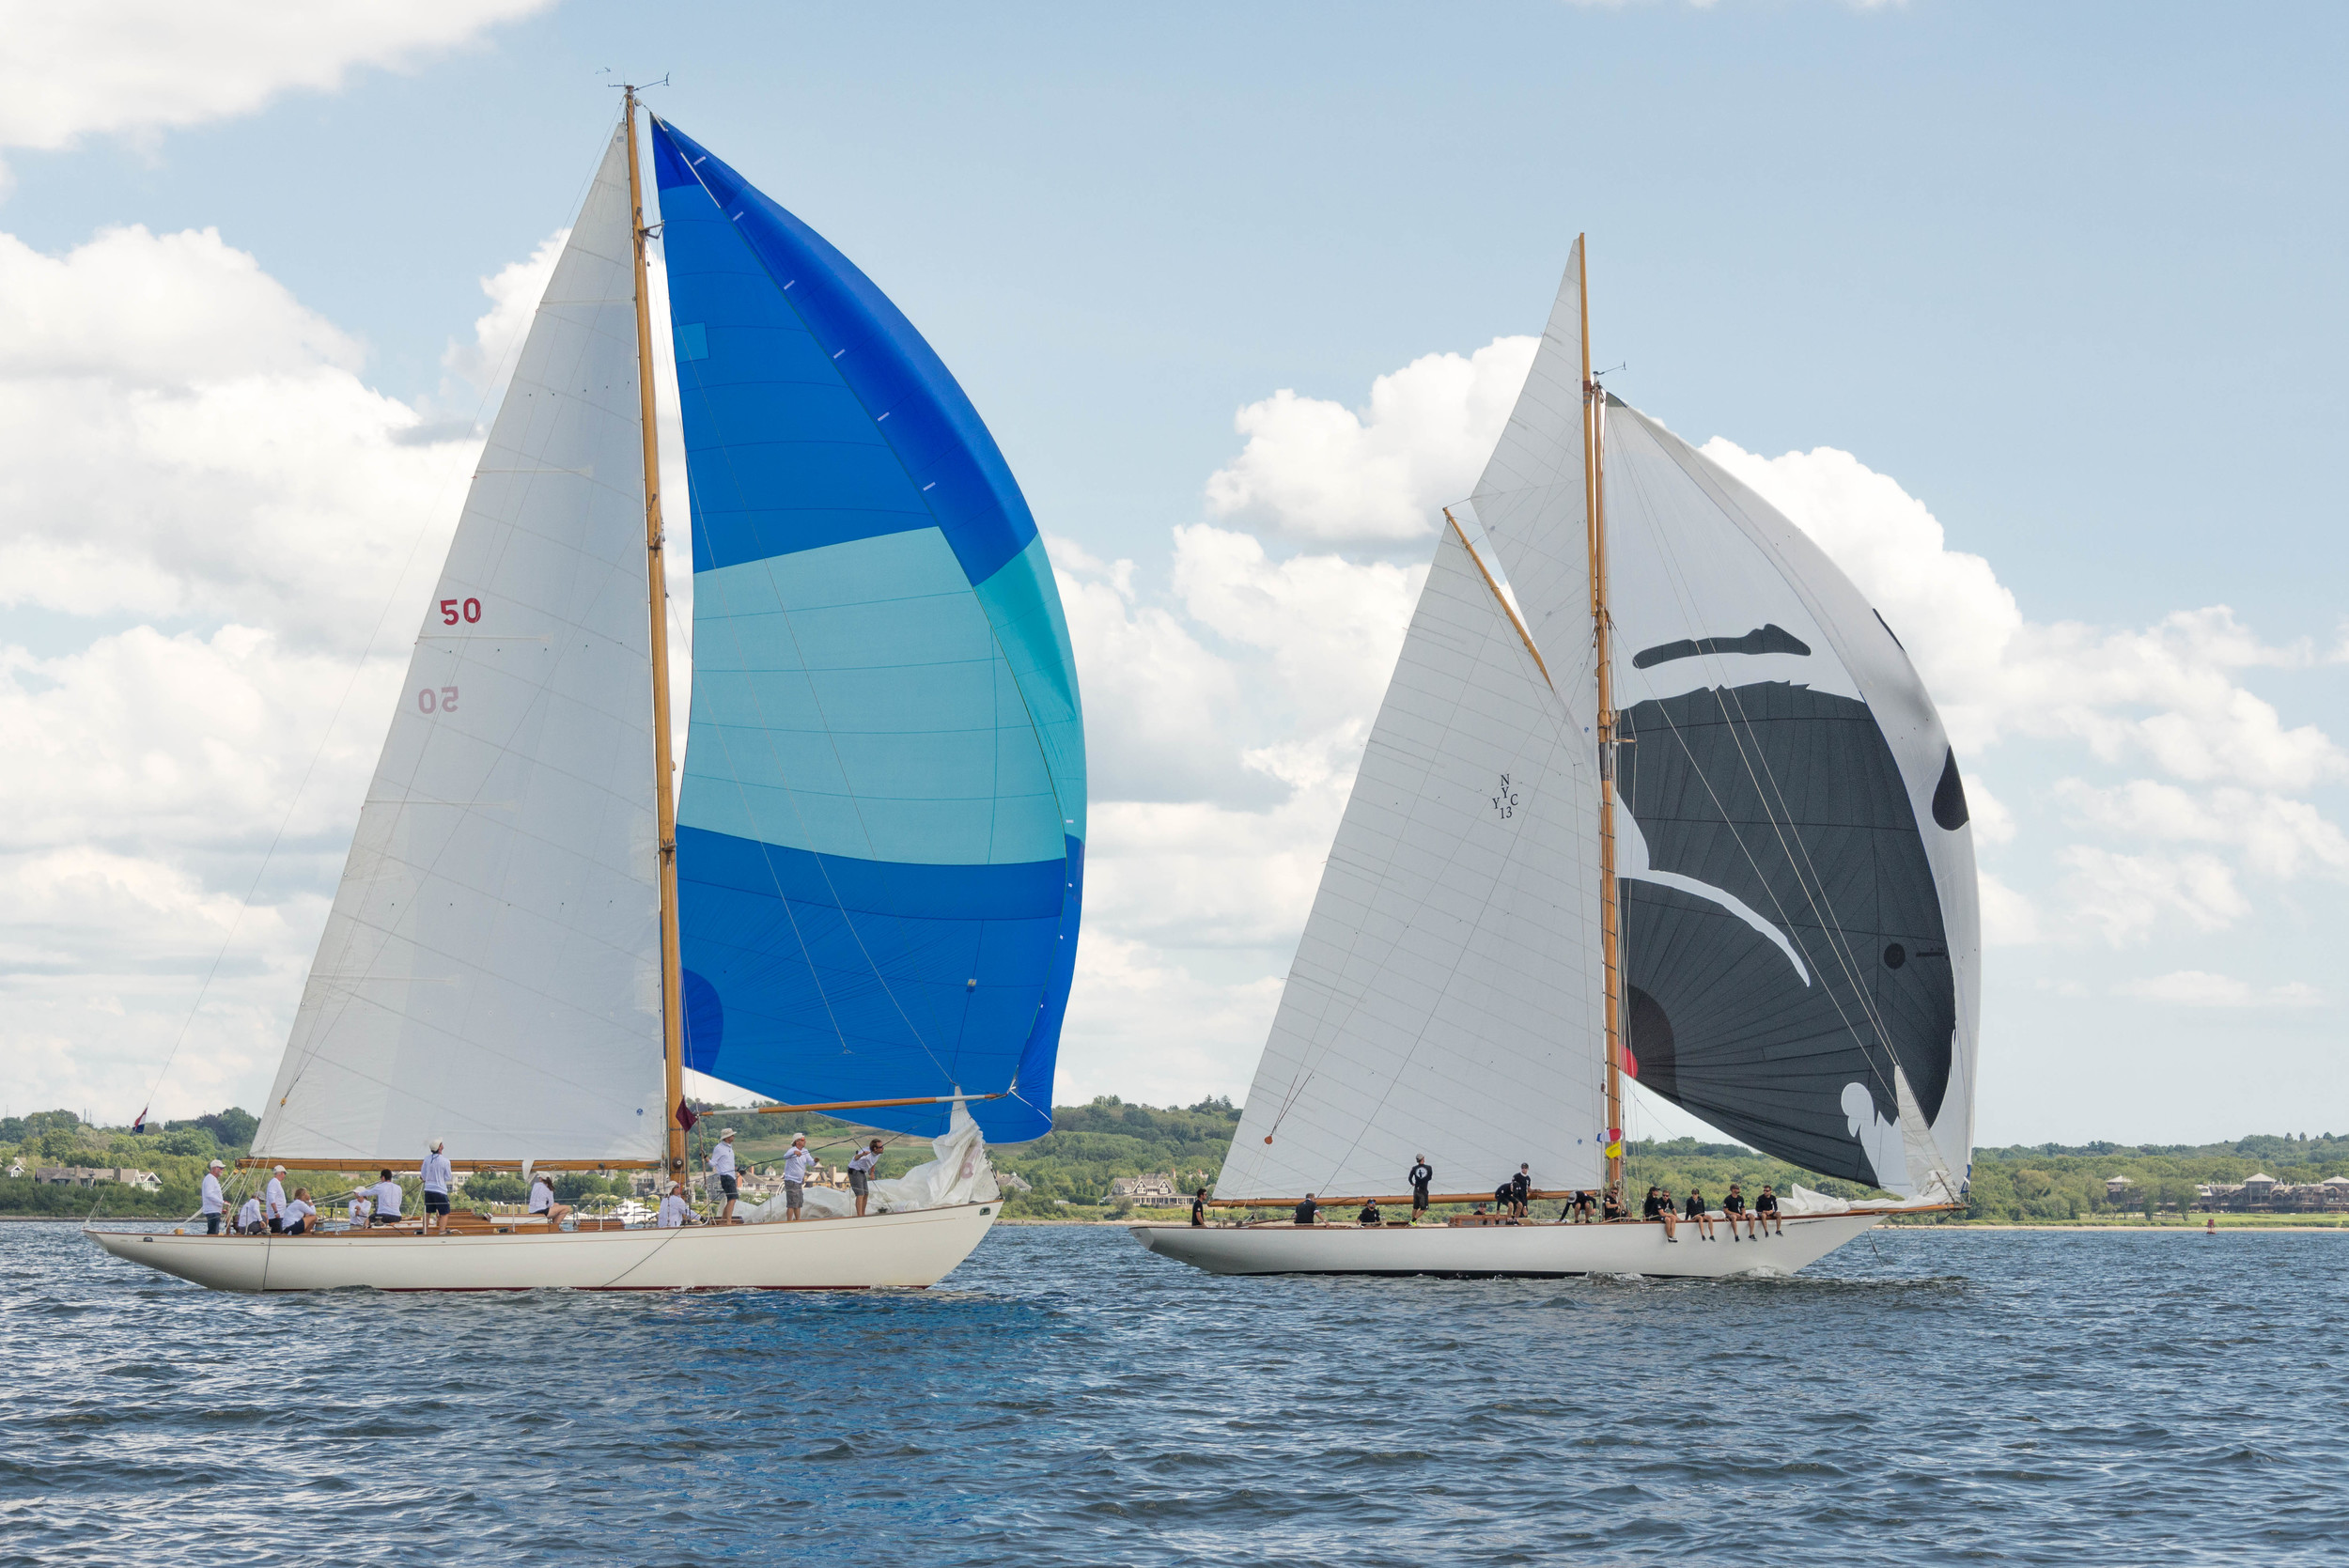 The 54-foot sloop Sonny (left) and 58.5-foot New York 40 Marilee race side by side under spinnaker.